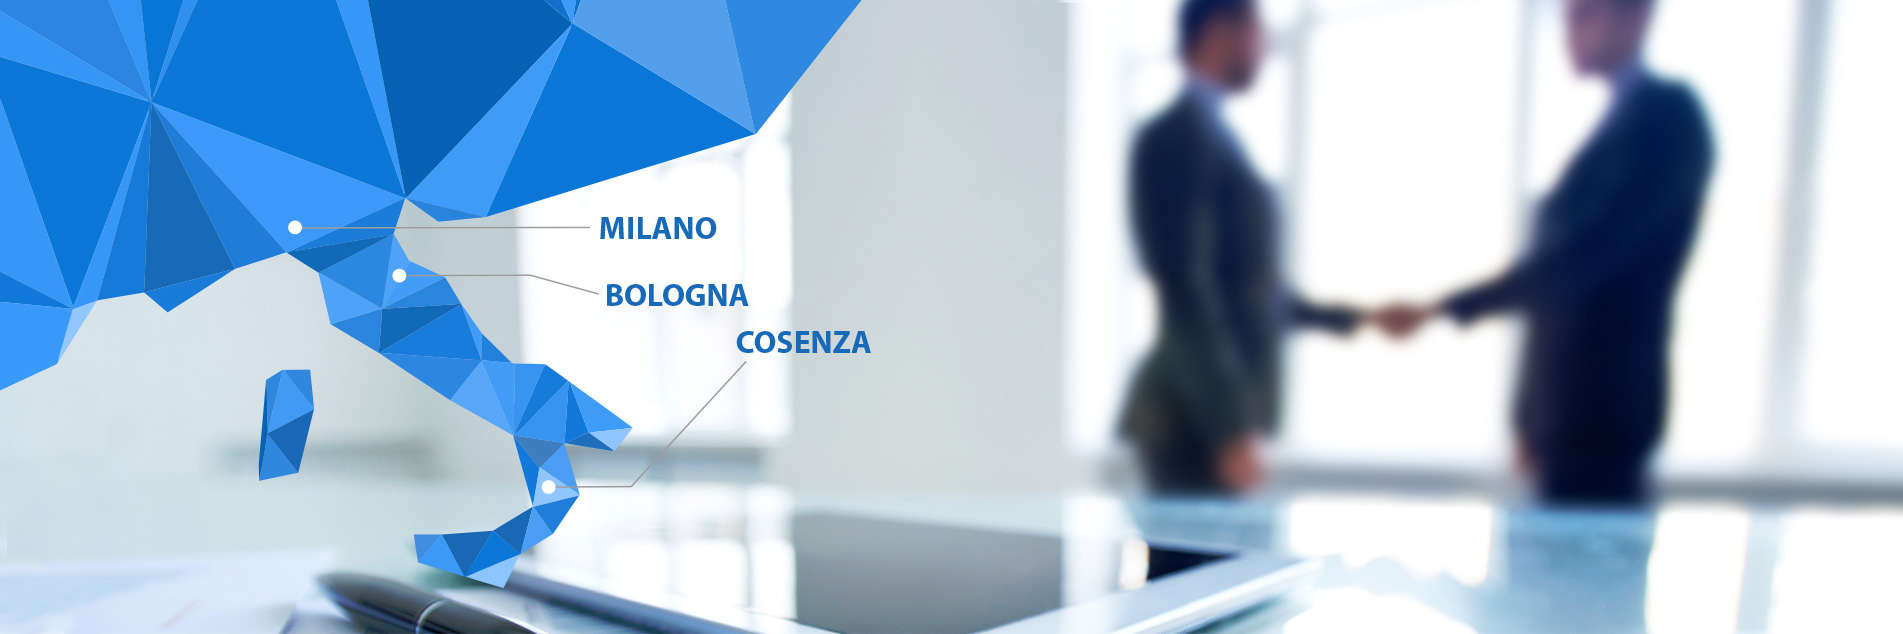 Open our new offices in Milan and Bologna!